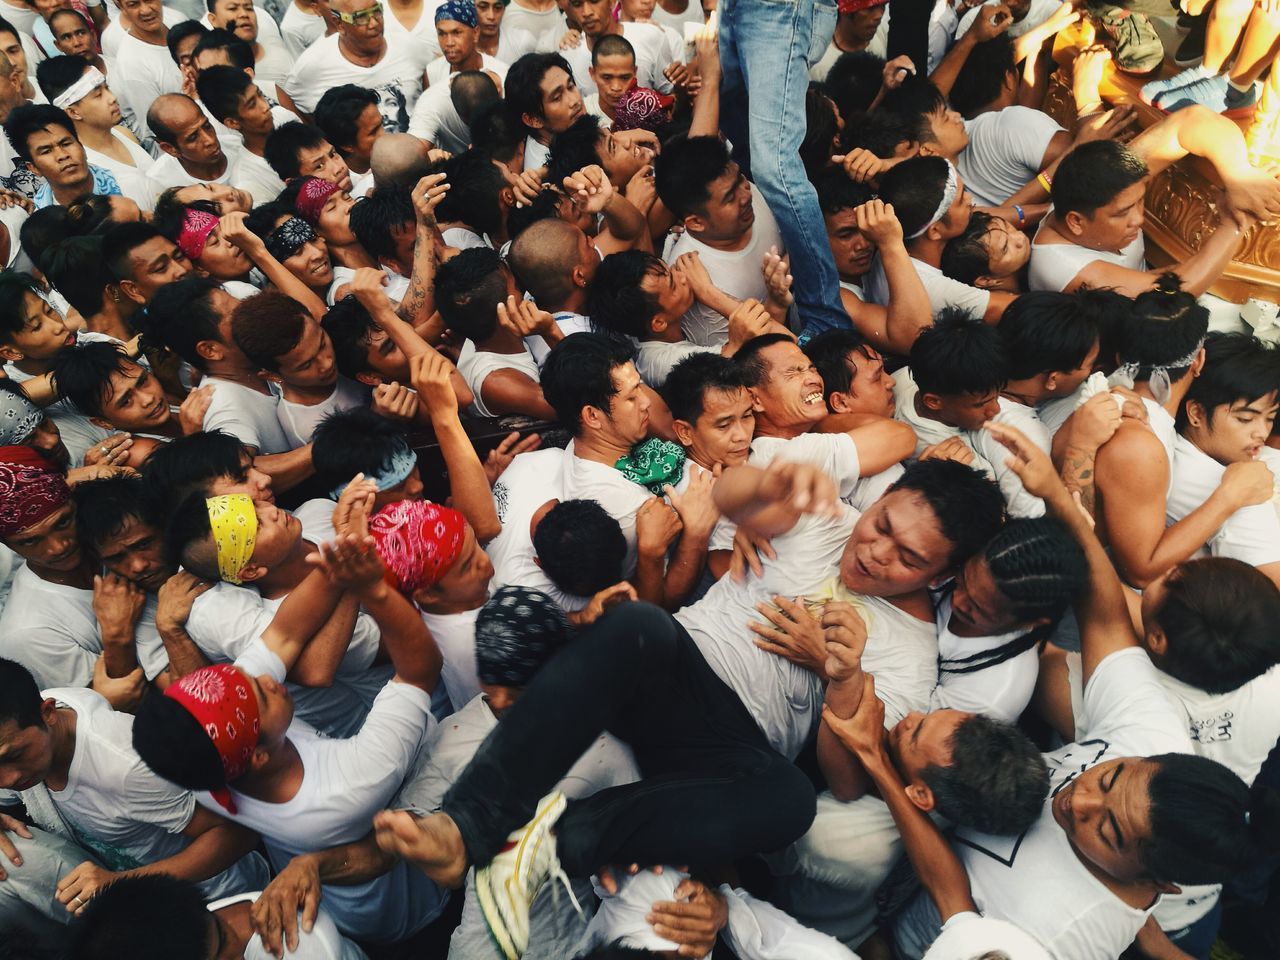 Eyeem Philippines Togetherness Capture The Moment Human Condition Everyday People Your Design Story Telling Stories Differently Large Group Of People Outdoors People Street In Color EyeEm The Human Condition EyeEm Best Shots The Photojournalist - 2017 EyeEm Awards